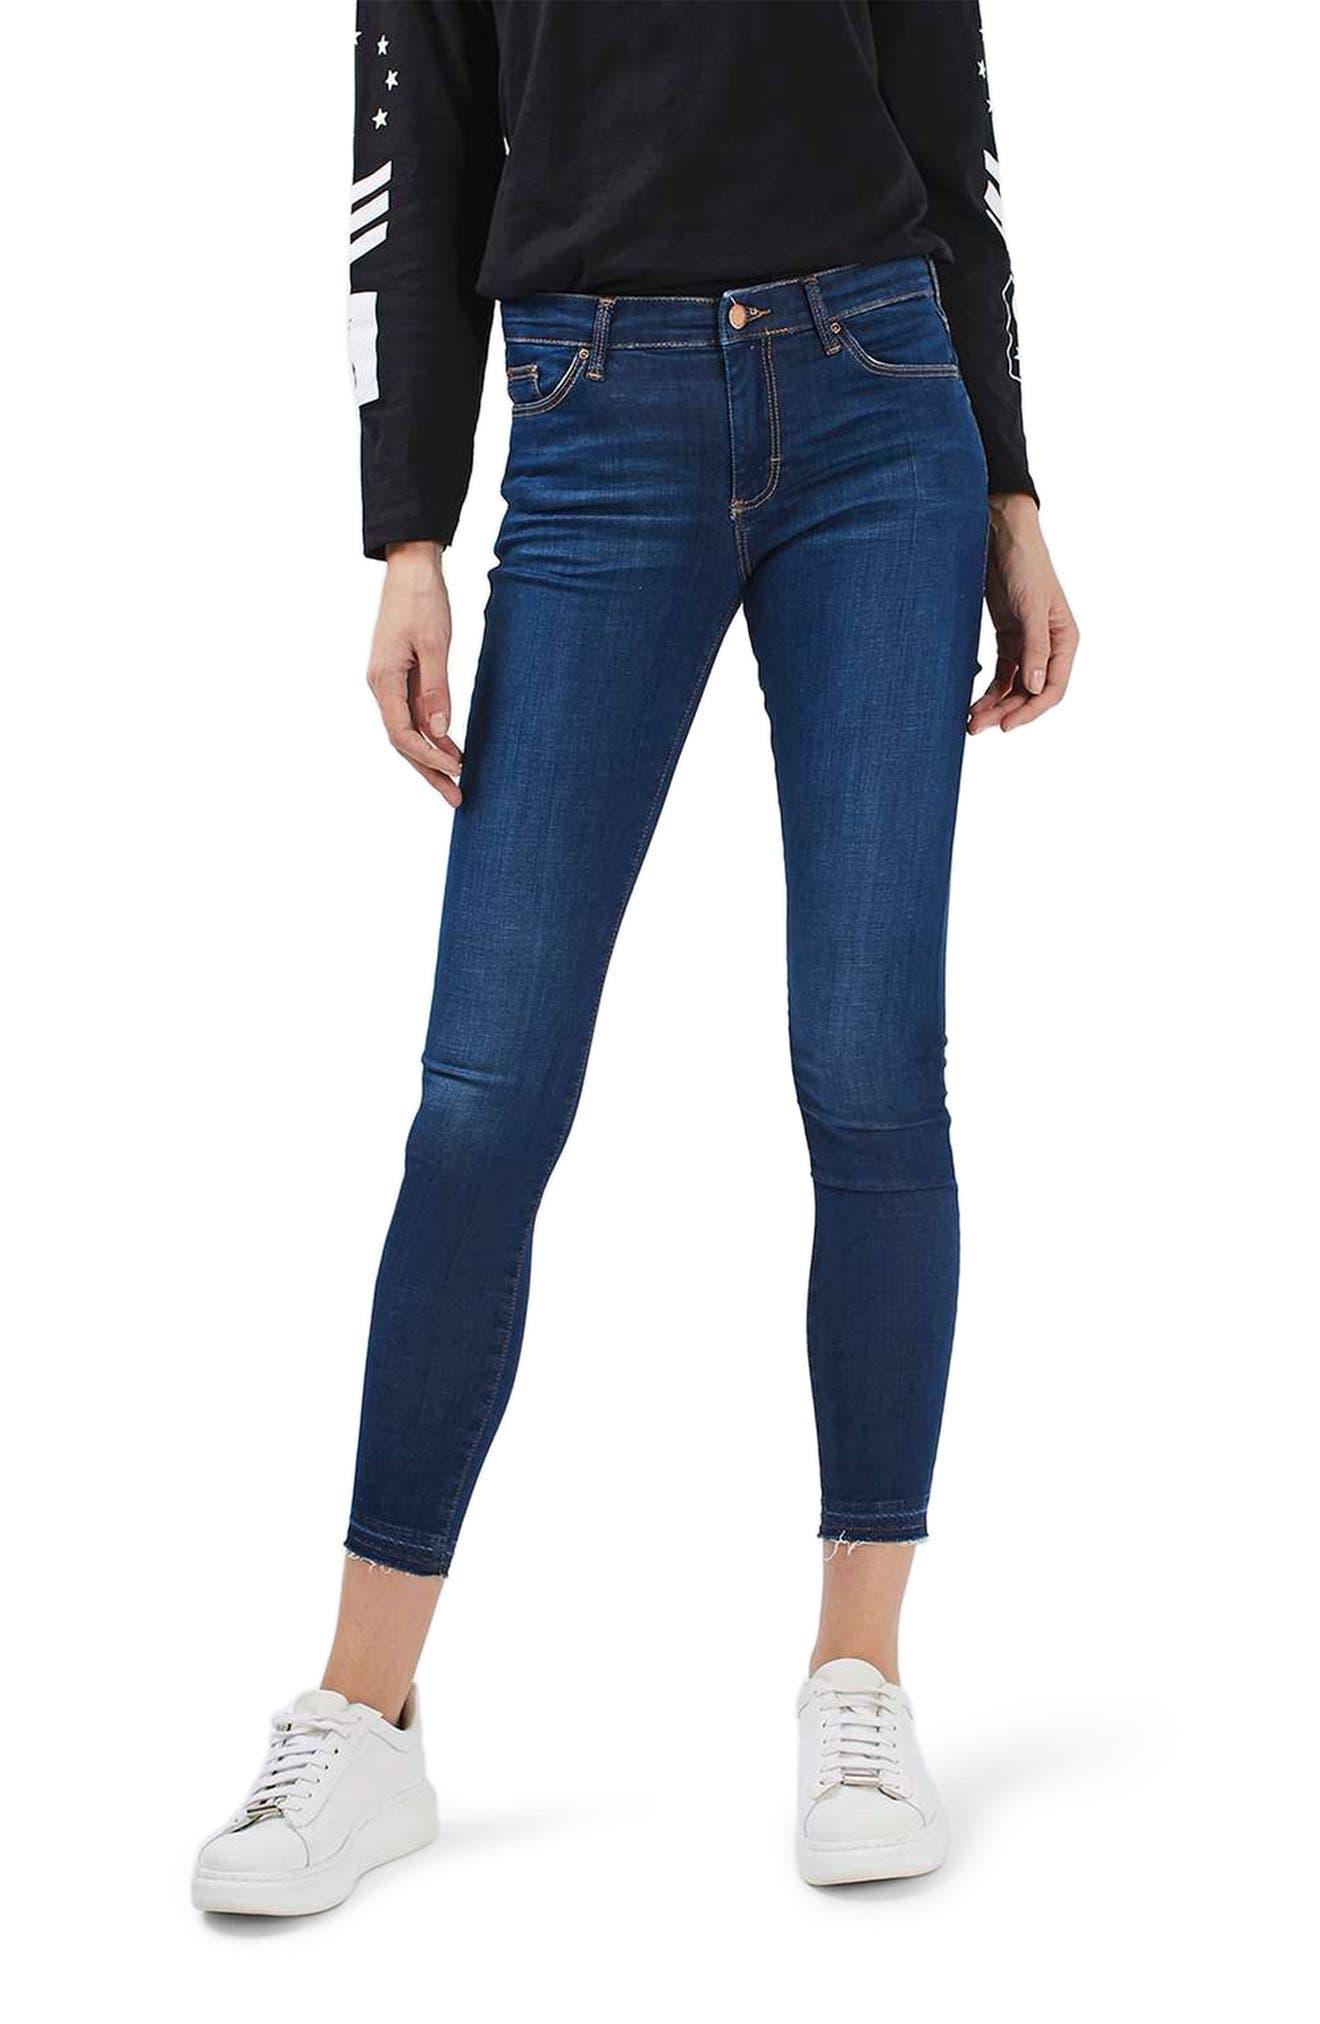 Leigh Released Hem Skinny Jeans,                         Main,                         color, 401